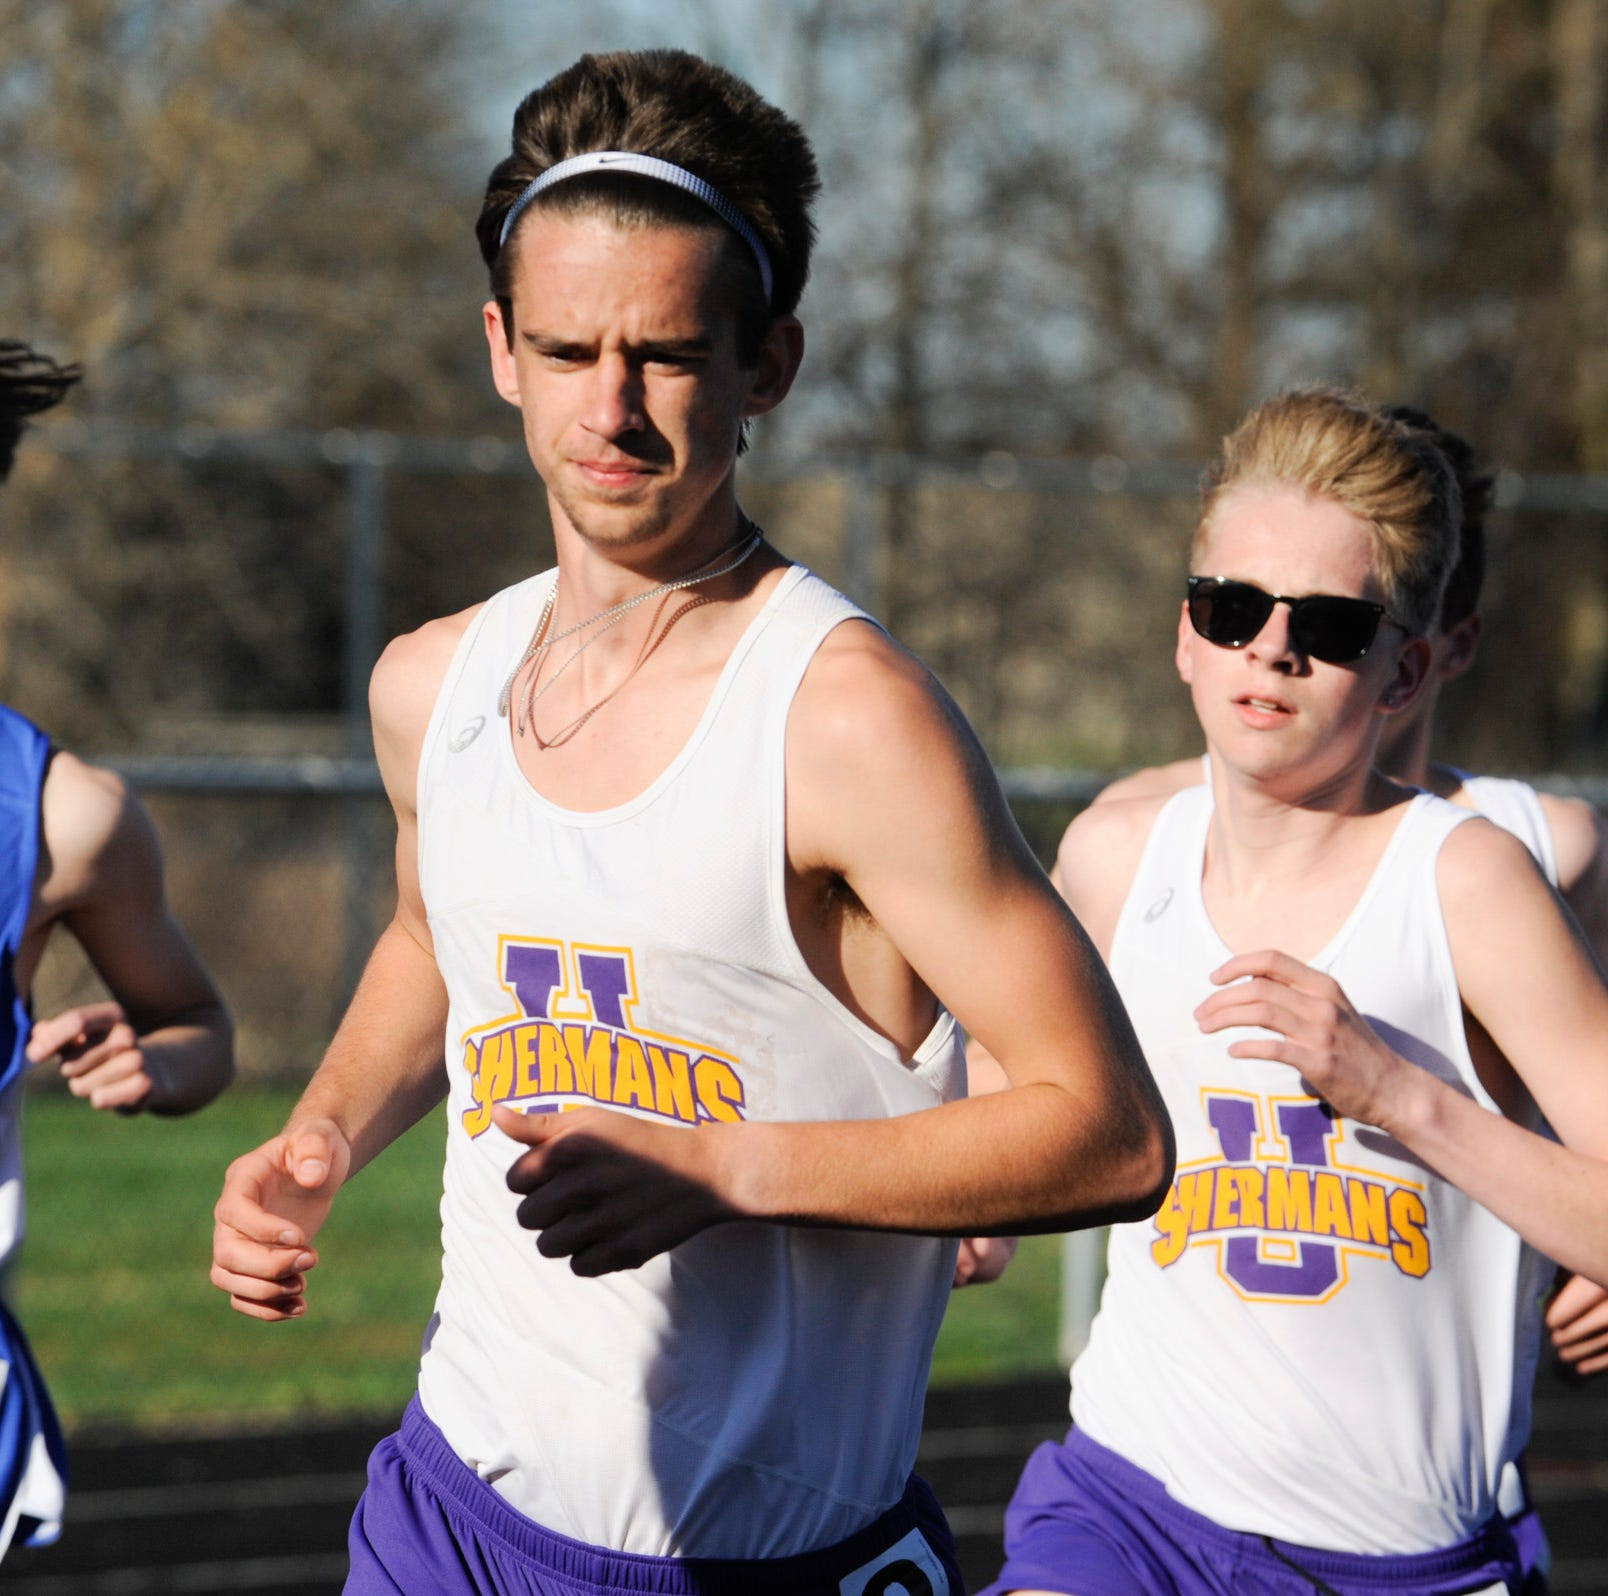 OHIO HS TRACK AND FIELD: Unioto boys, girls defeat Chillicothe in home dual